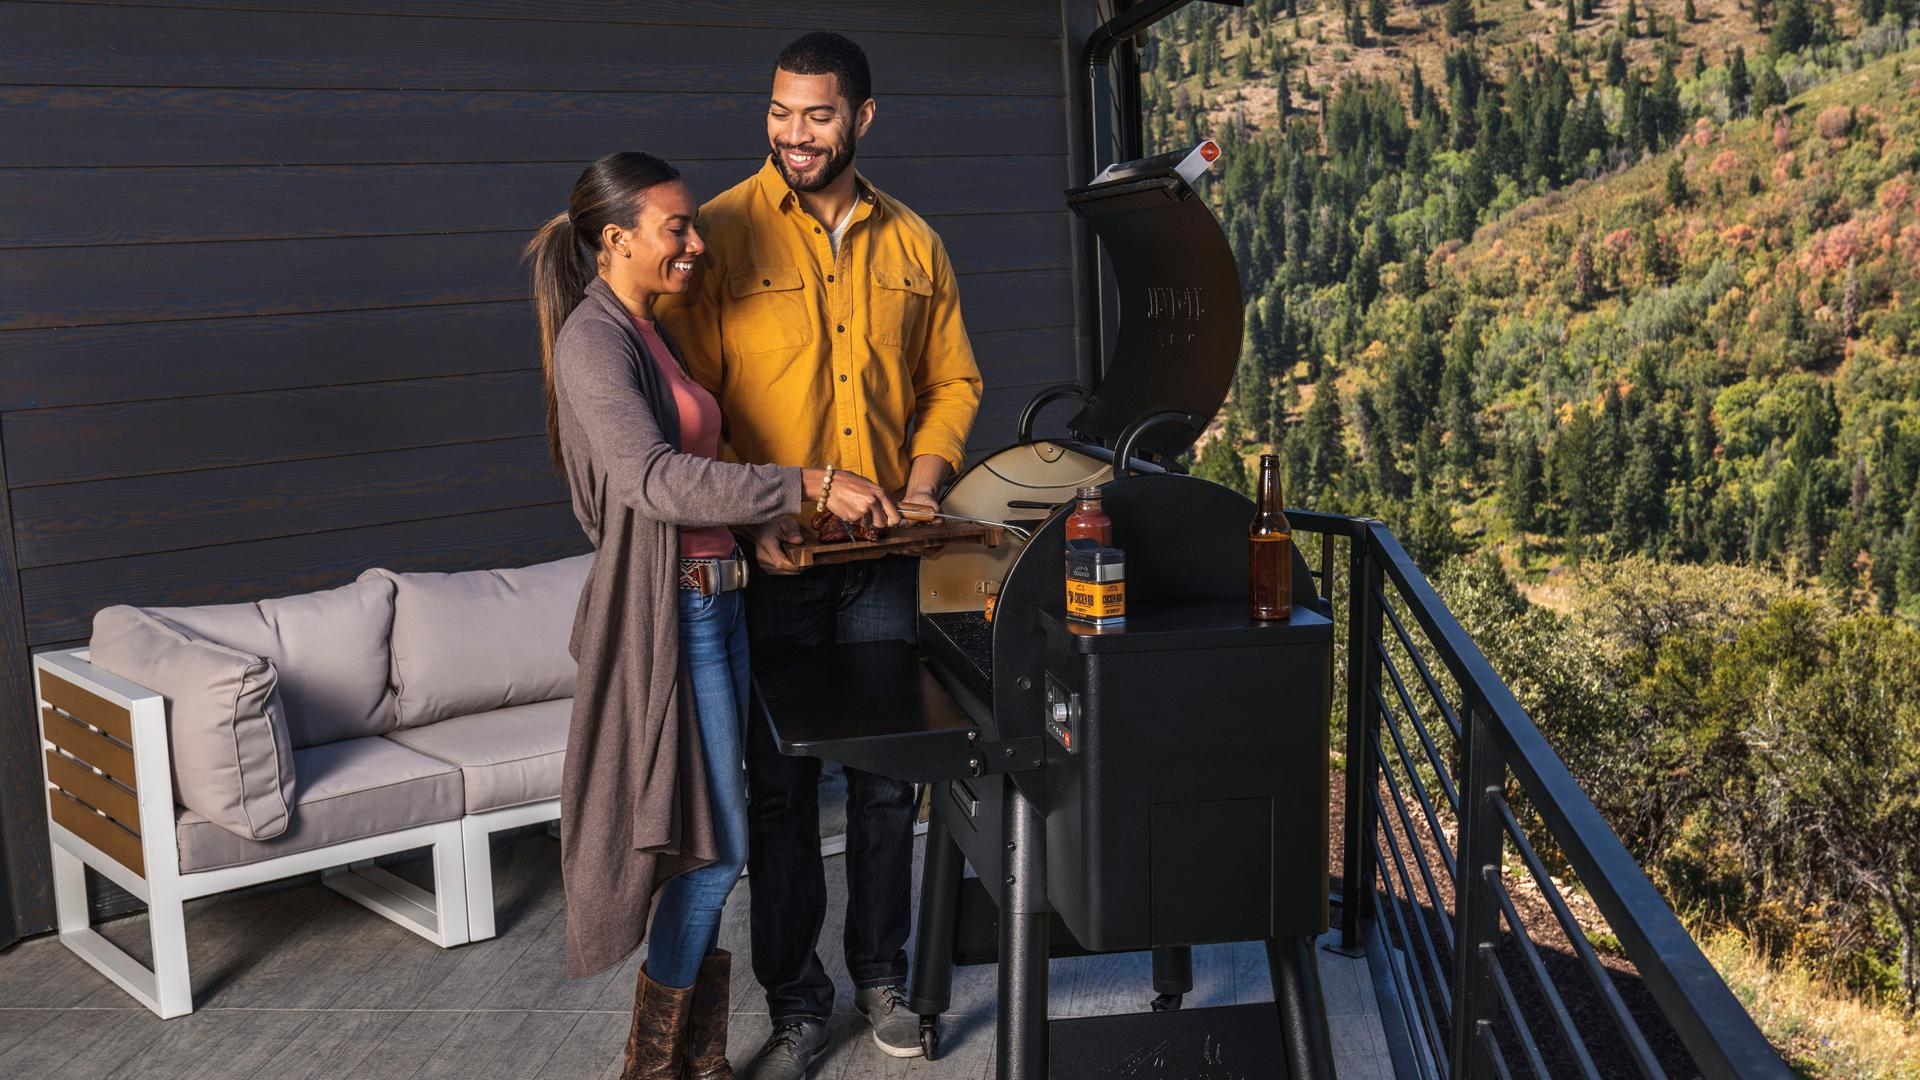 Win a Traeger Pro 575 Grill | A young couple cooks on a Traeger Grill